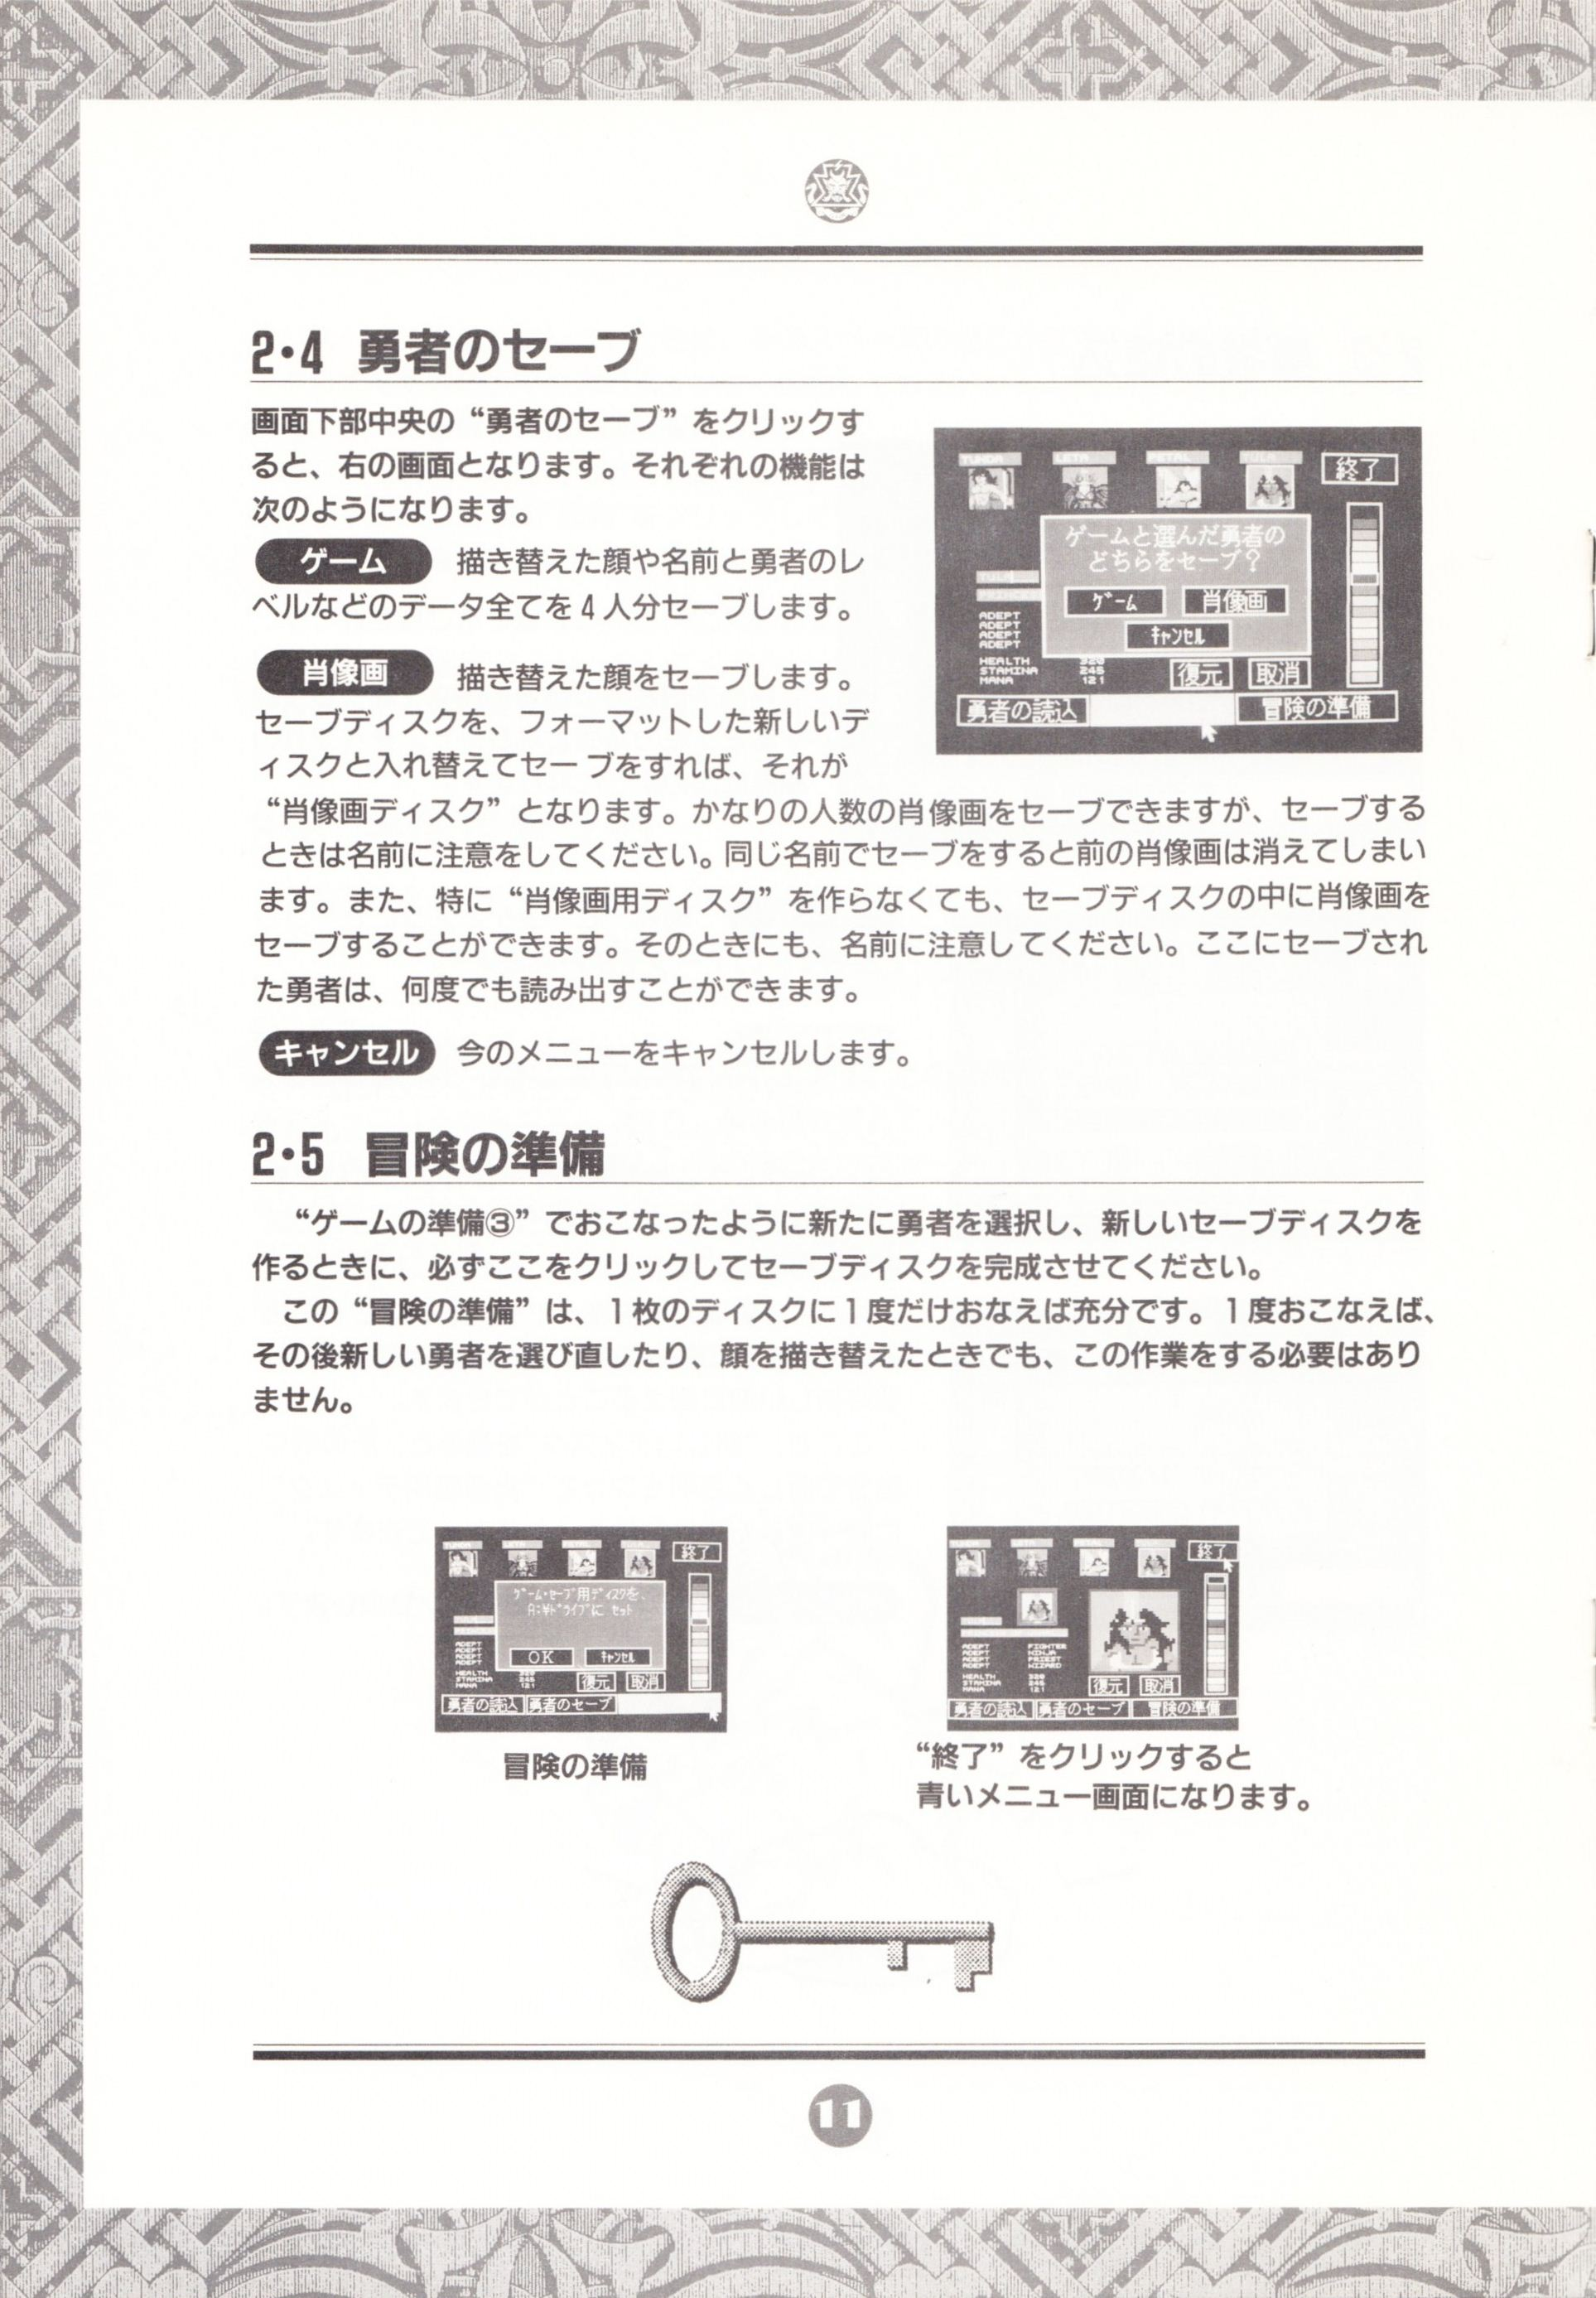 Game - Chaos Strikes Back - JP - FM Towns - An Operation Manual - Page 014 - Scan